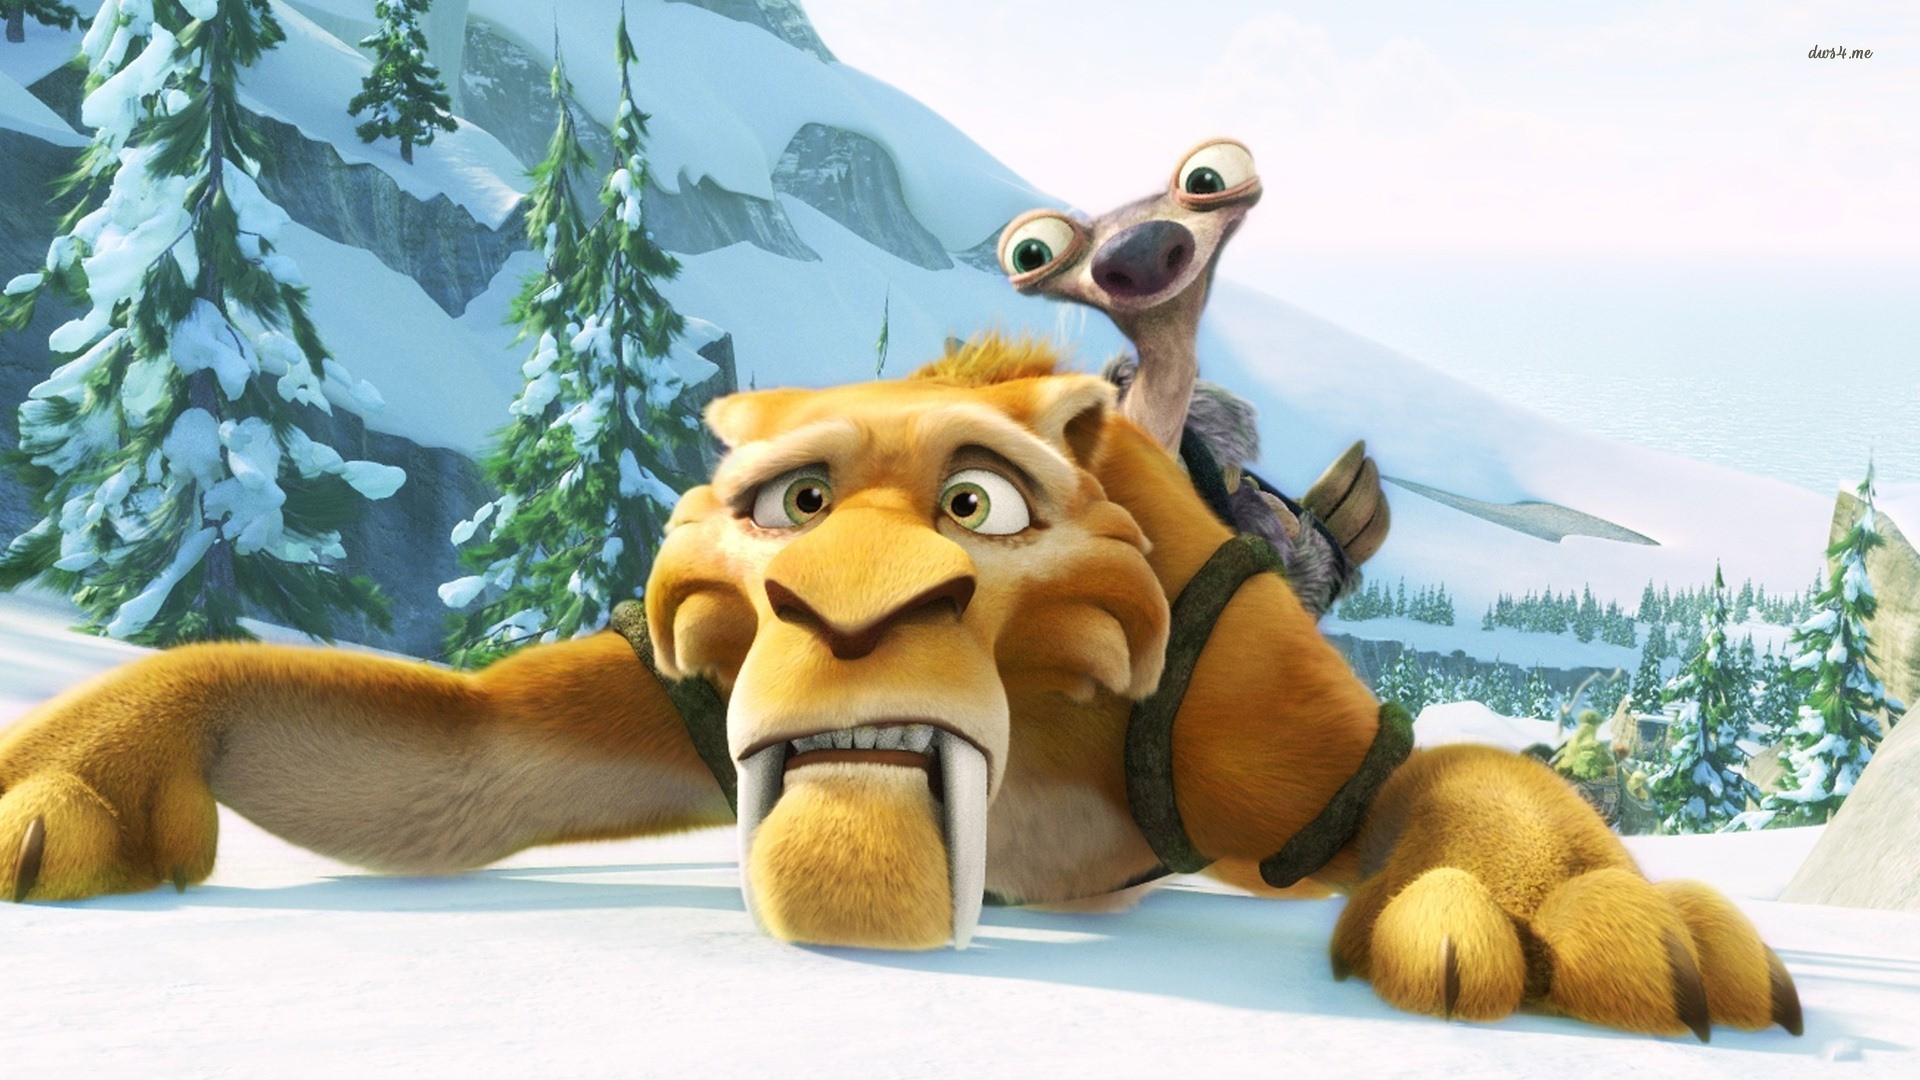 Ice Age Sid Wallpapers 4 | Ice Age Sid Wallpapers | Pinterest | Ice age sid  and Ice age